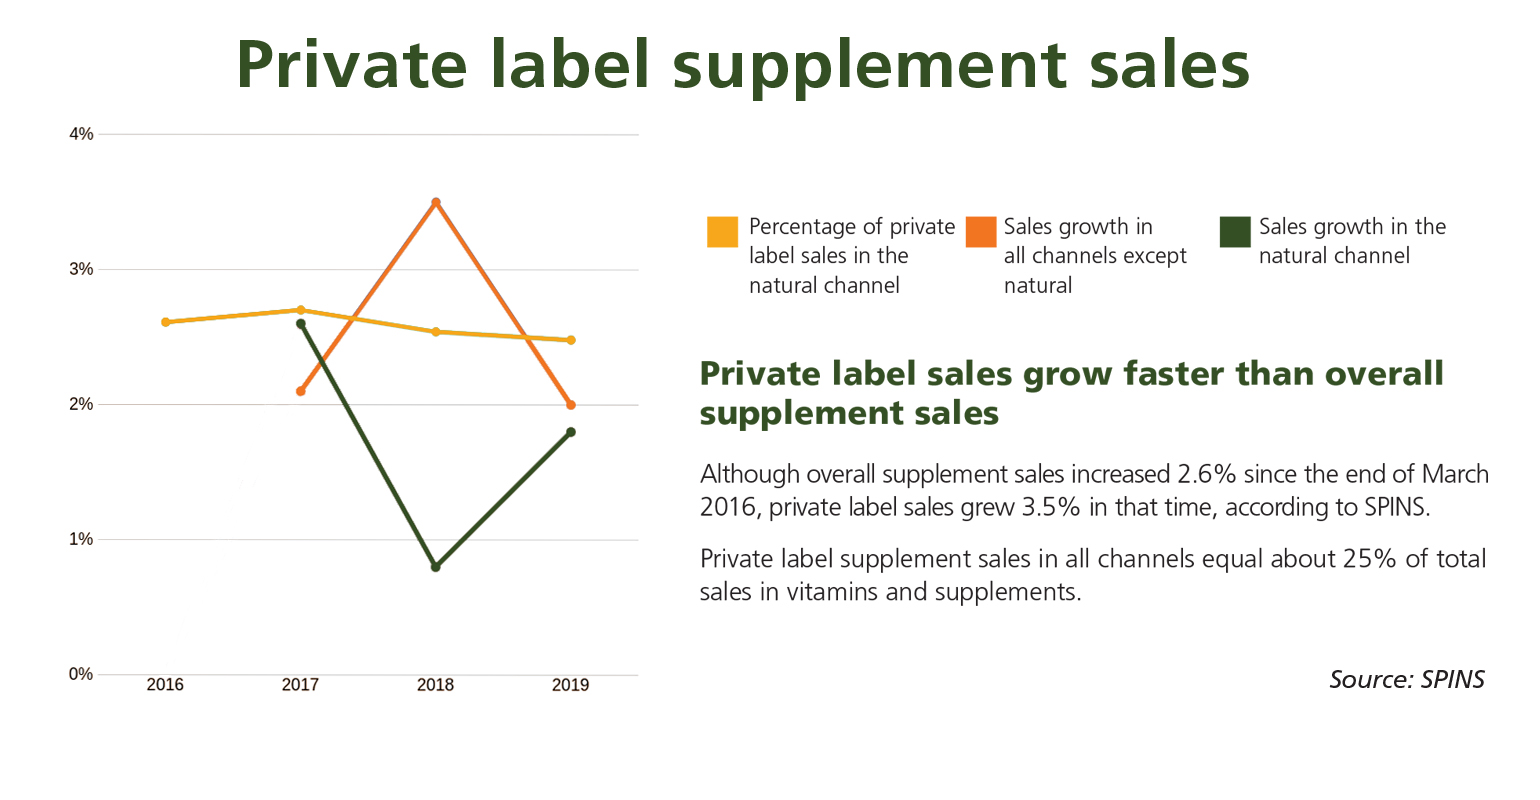 SPINS data private-label supplement sales growing